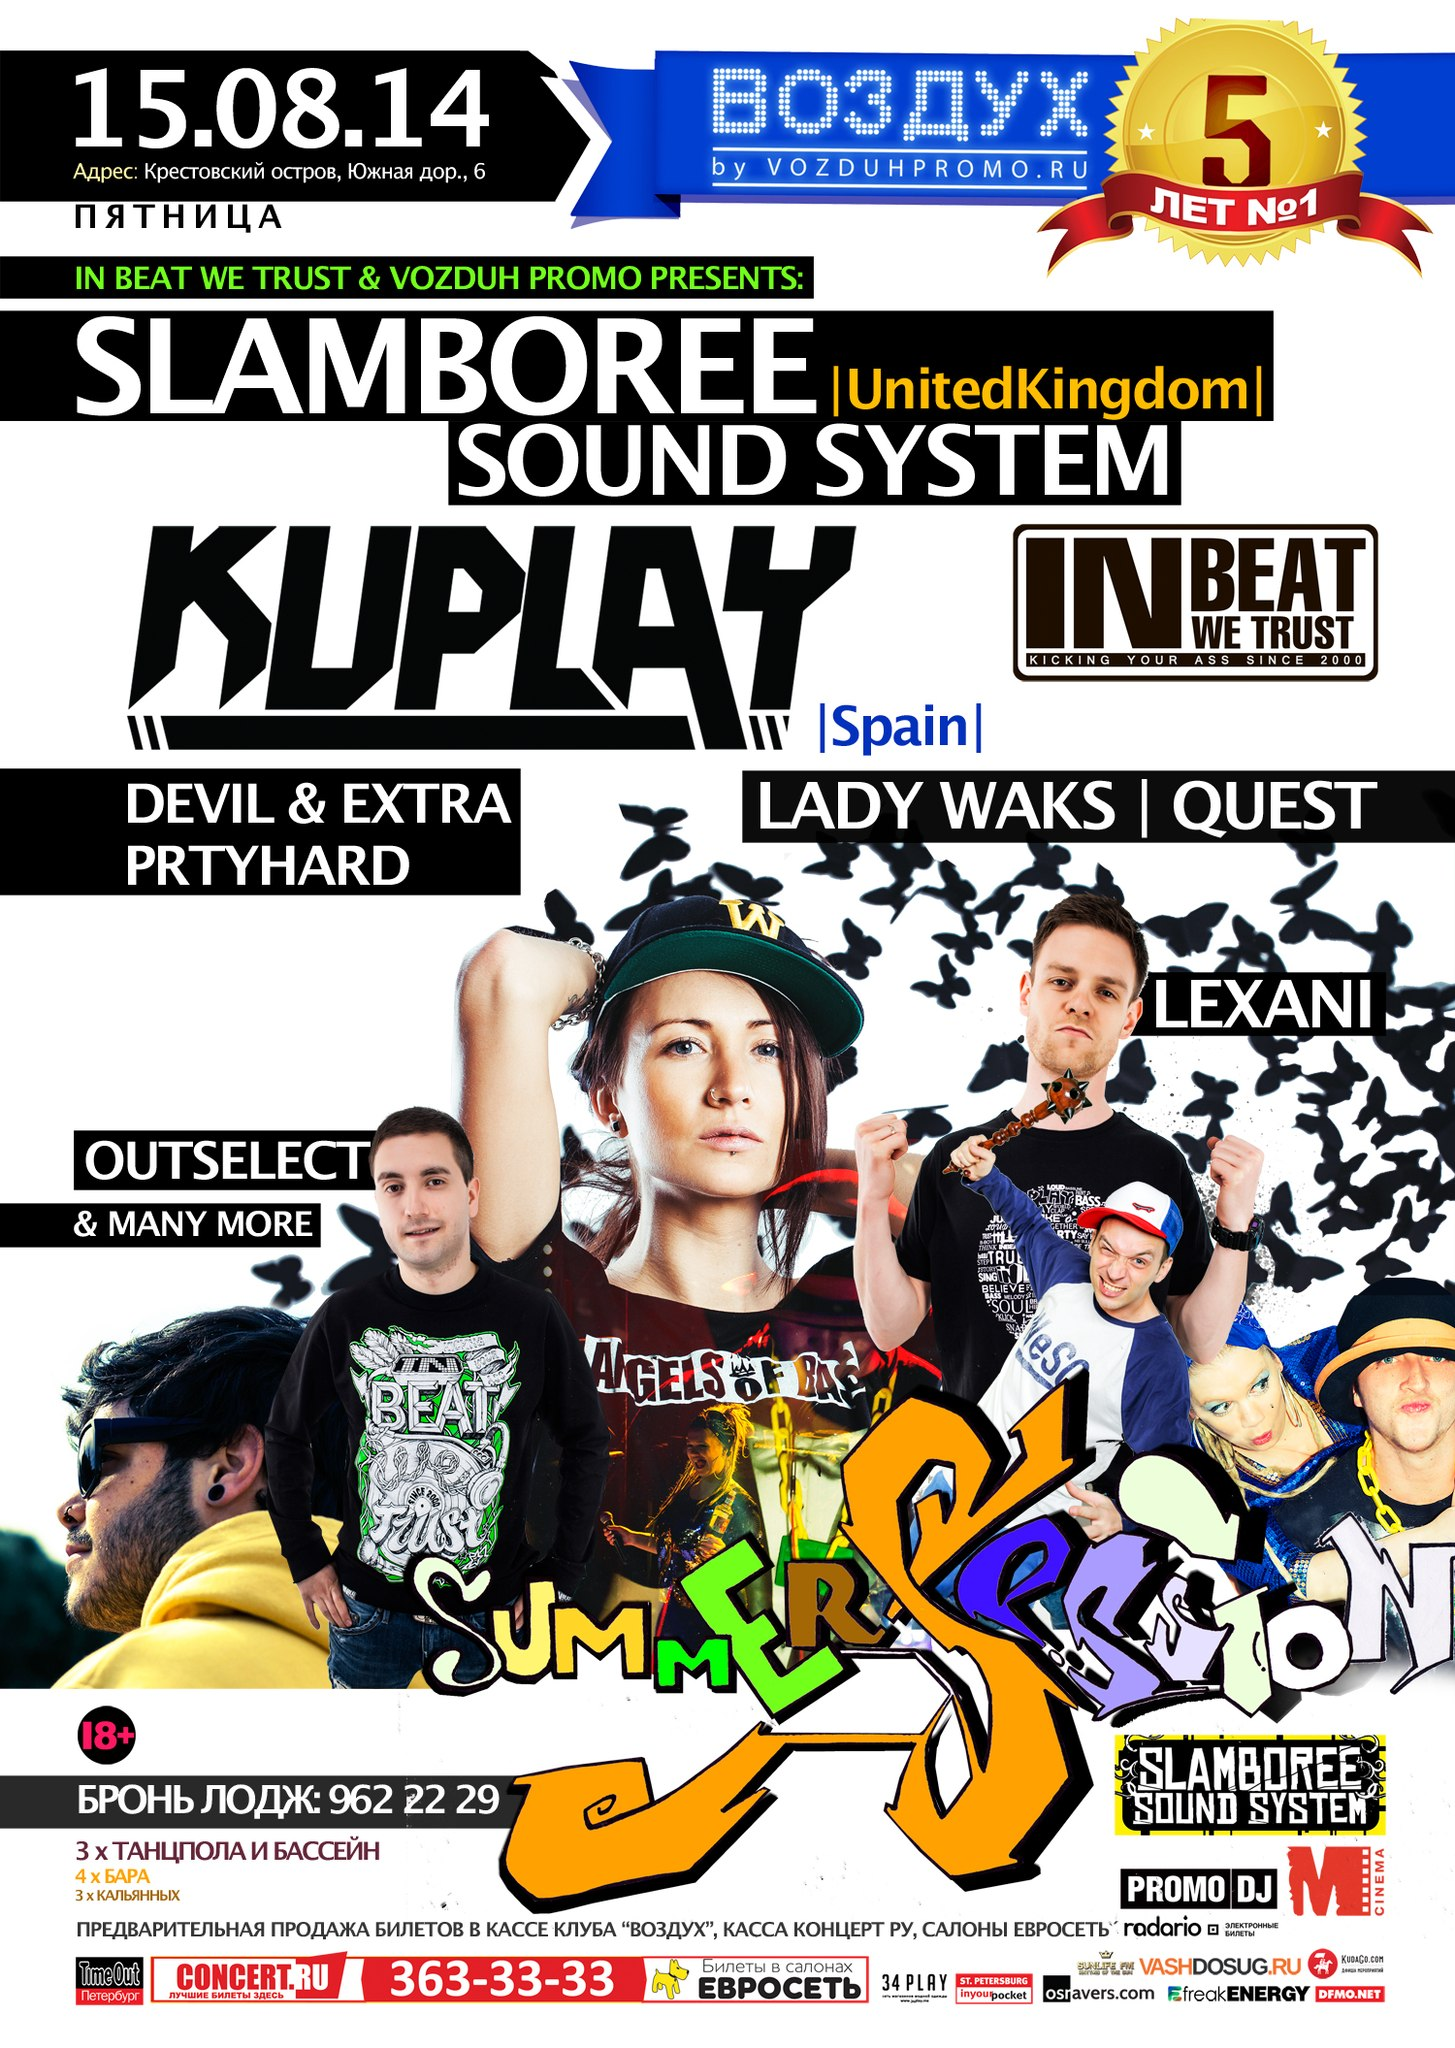 KUPLAY SLAMBOREE